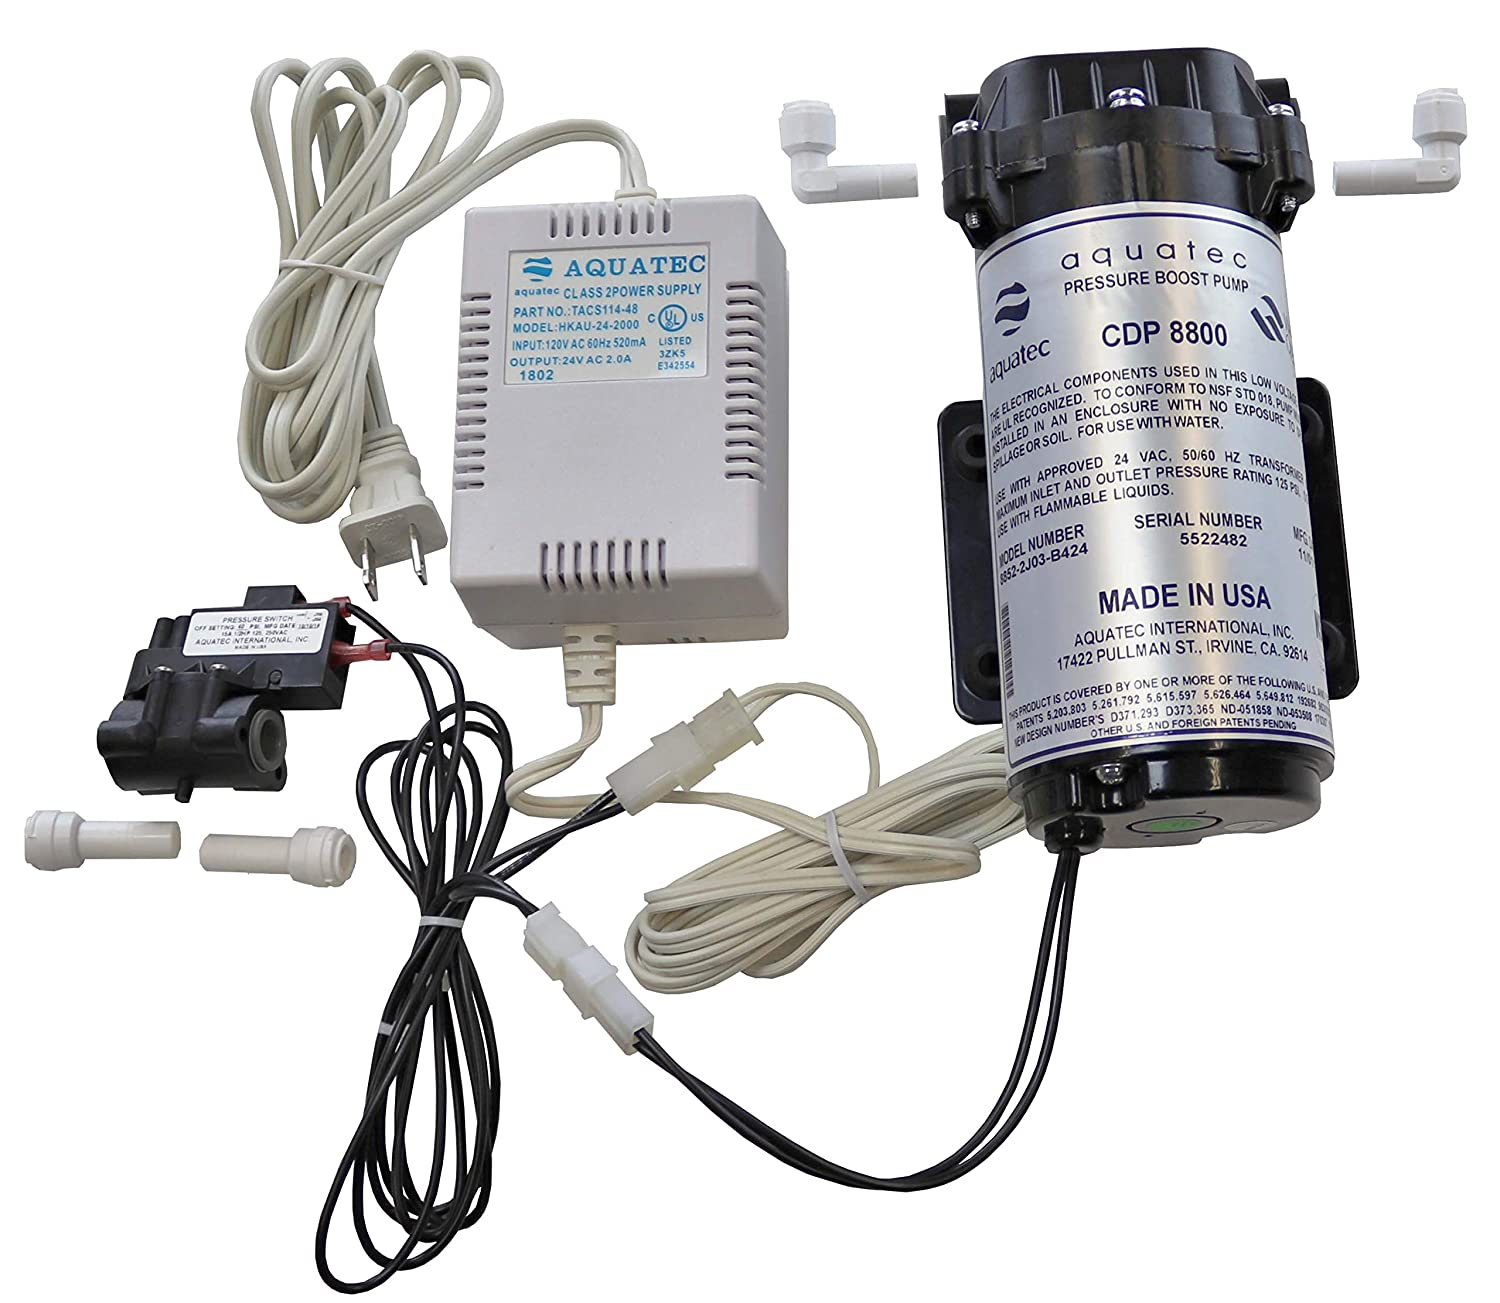 Aquatec 8800 Booster Pump Kit for up to 200 GPD RO Reverse Osmosis water filtration system for both standard and manifold type systems 8852-2J03-B424 PSW-340 Made in USA